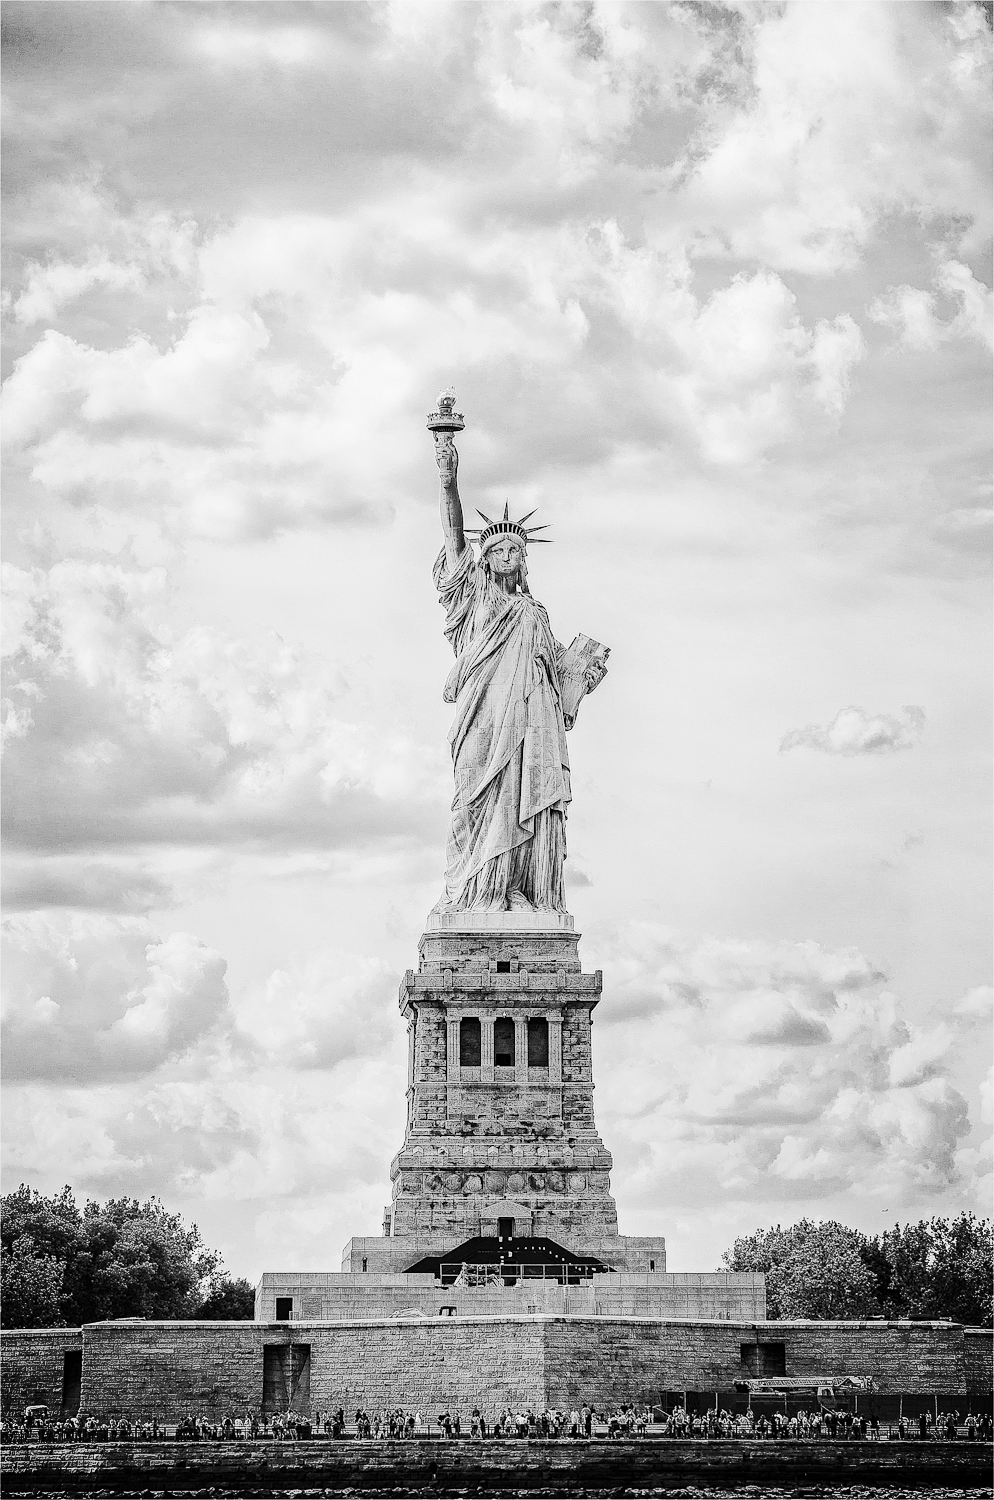 Statue of Liberty by Jason Joseph